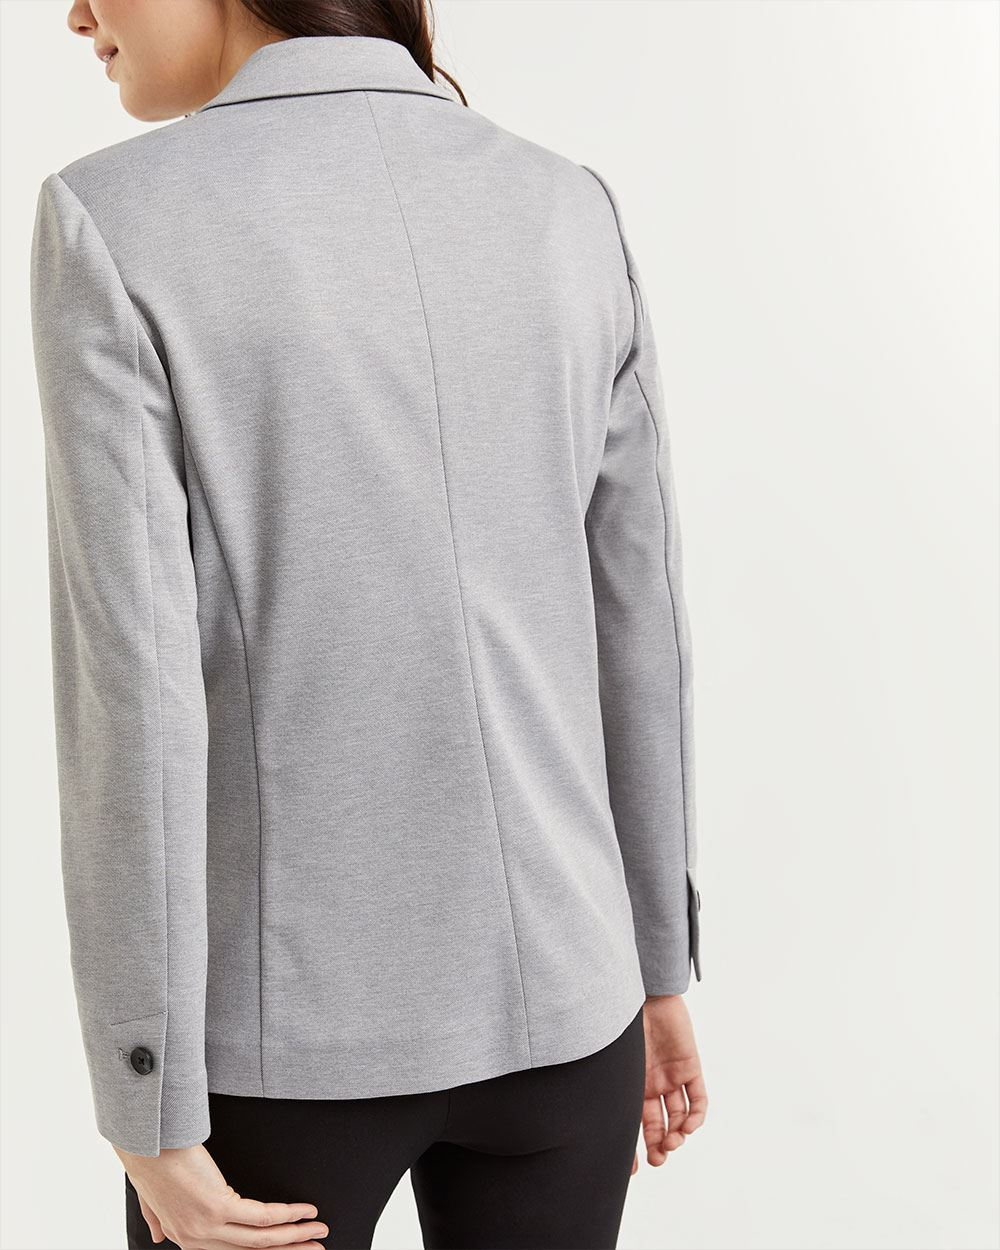 Notch Collar Pique Blazer